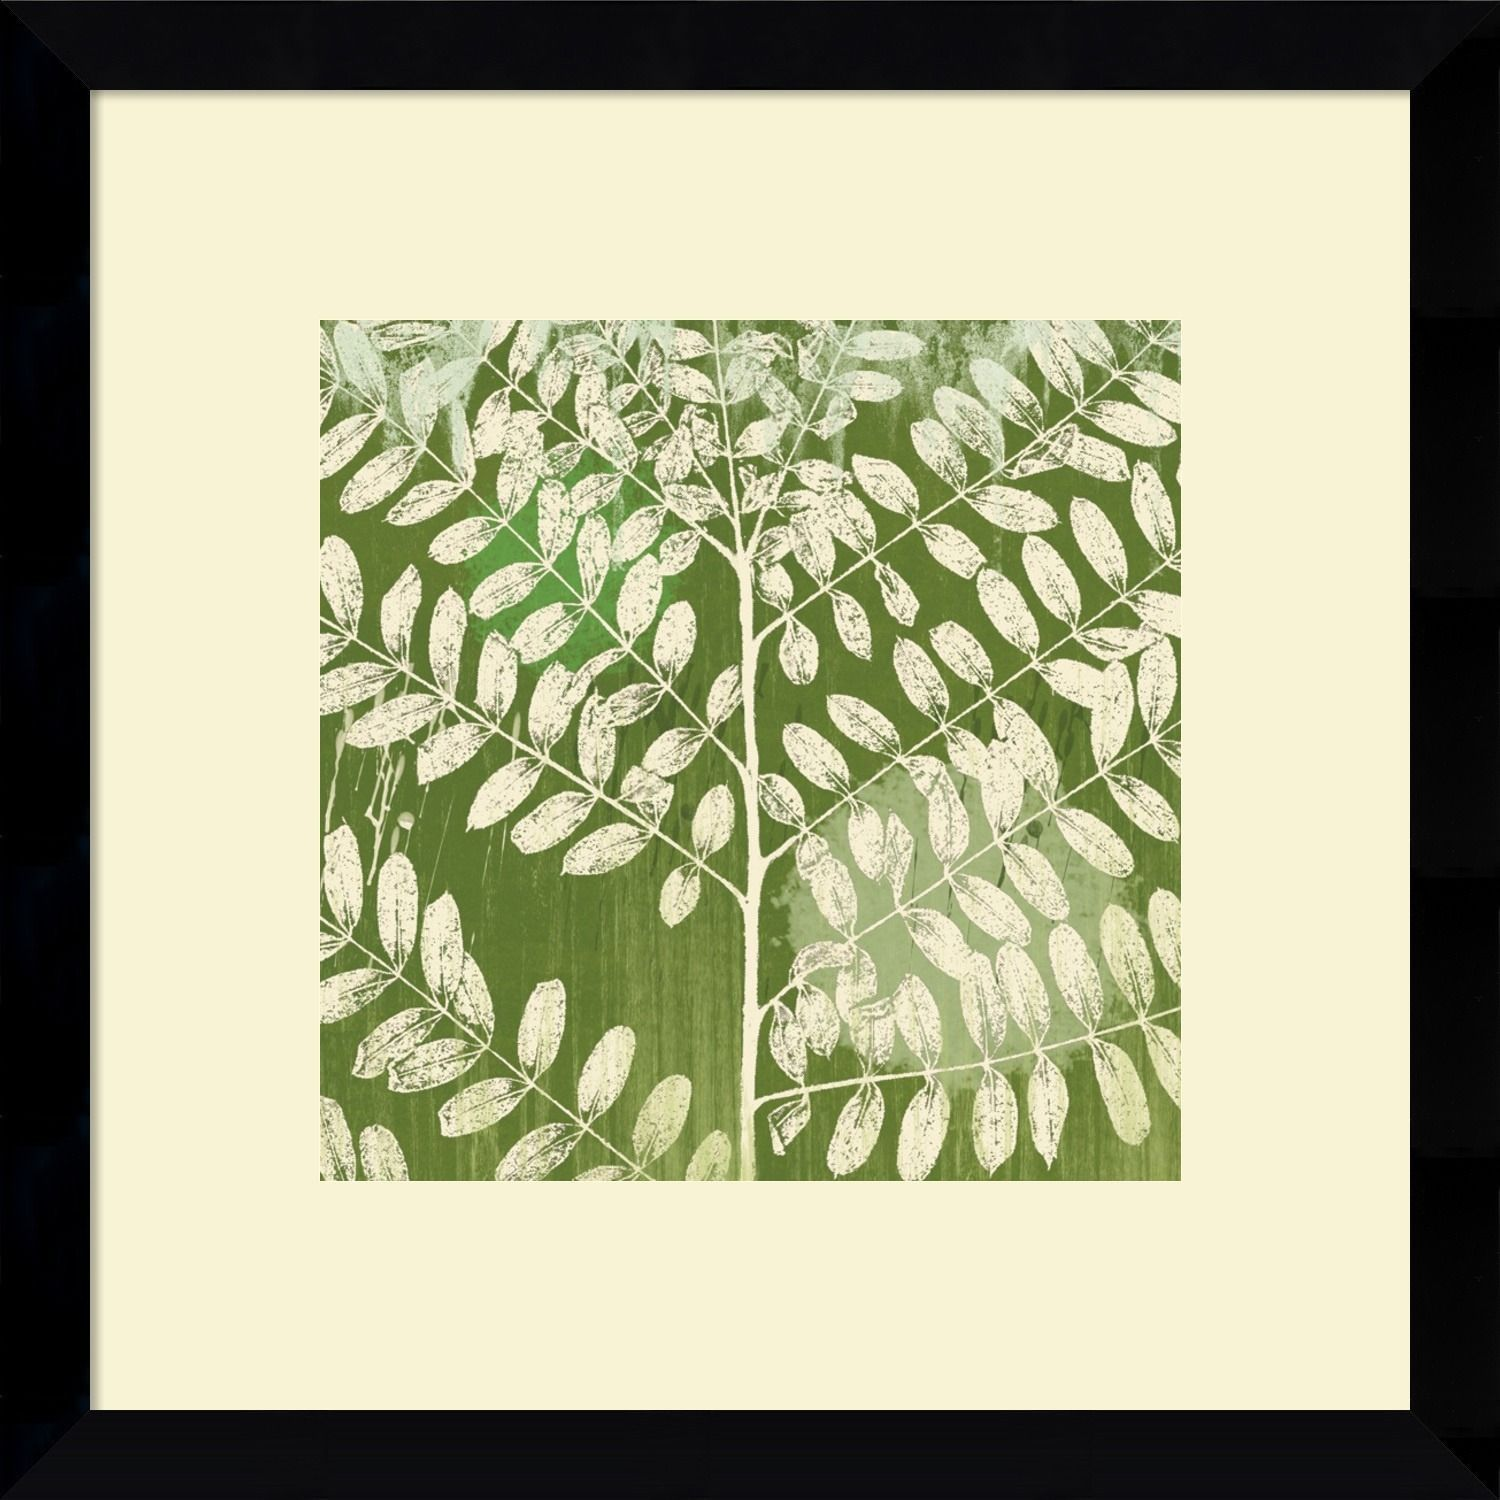 Erin Clark \'Forest Leaves\' Framed Art Print | Products | Pinterest ...